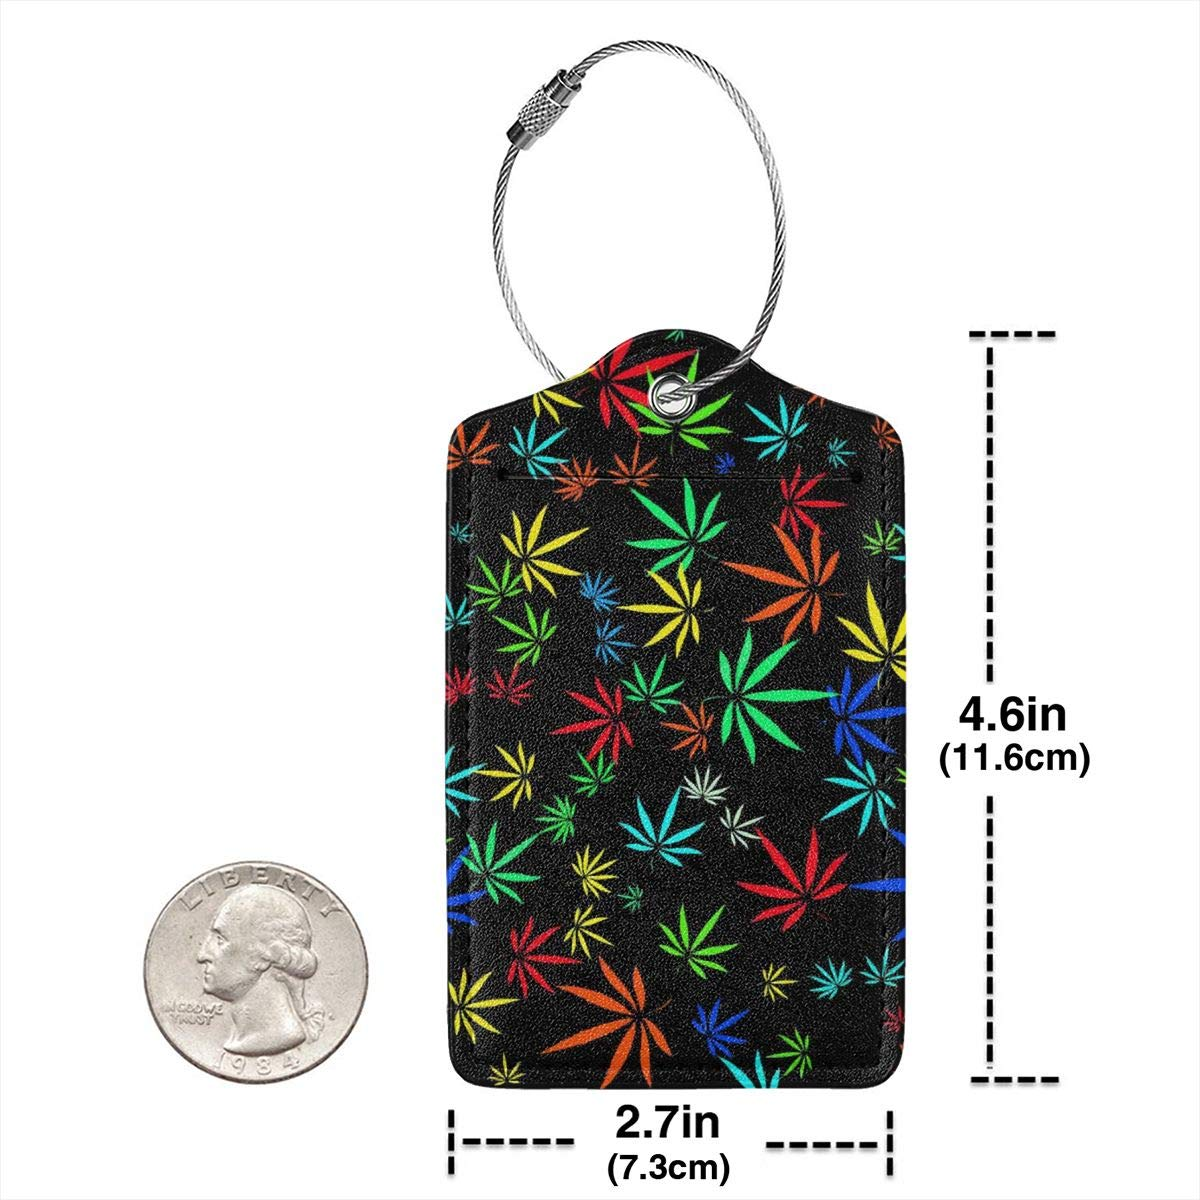 Marijuana Leaf American Flag Luggage Tag Label Travel Bag Label With Privacy Cover Luggage Tag Leather Personalized Suitcase Tag Travel Accessories